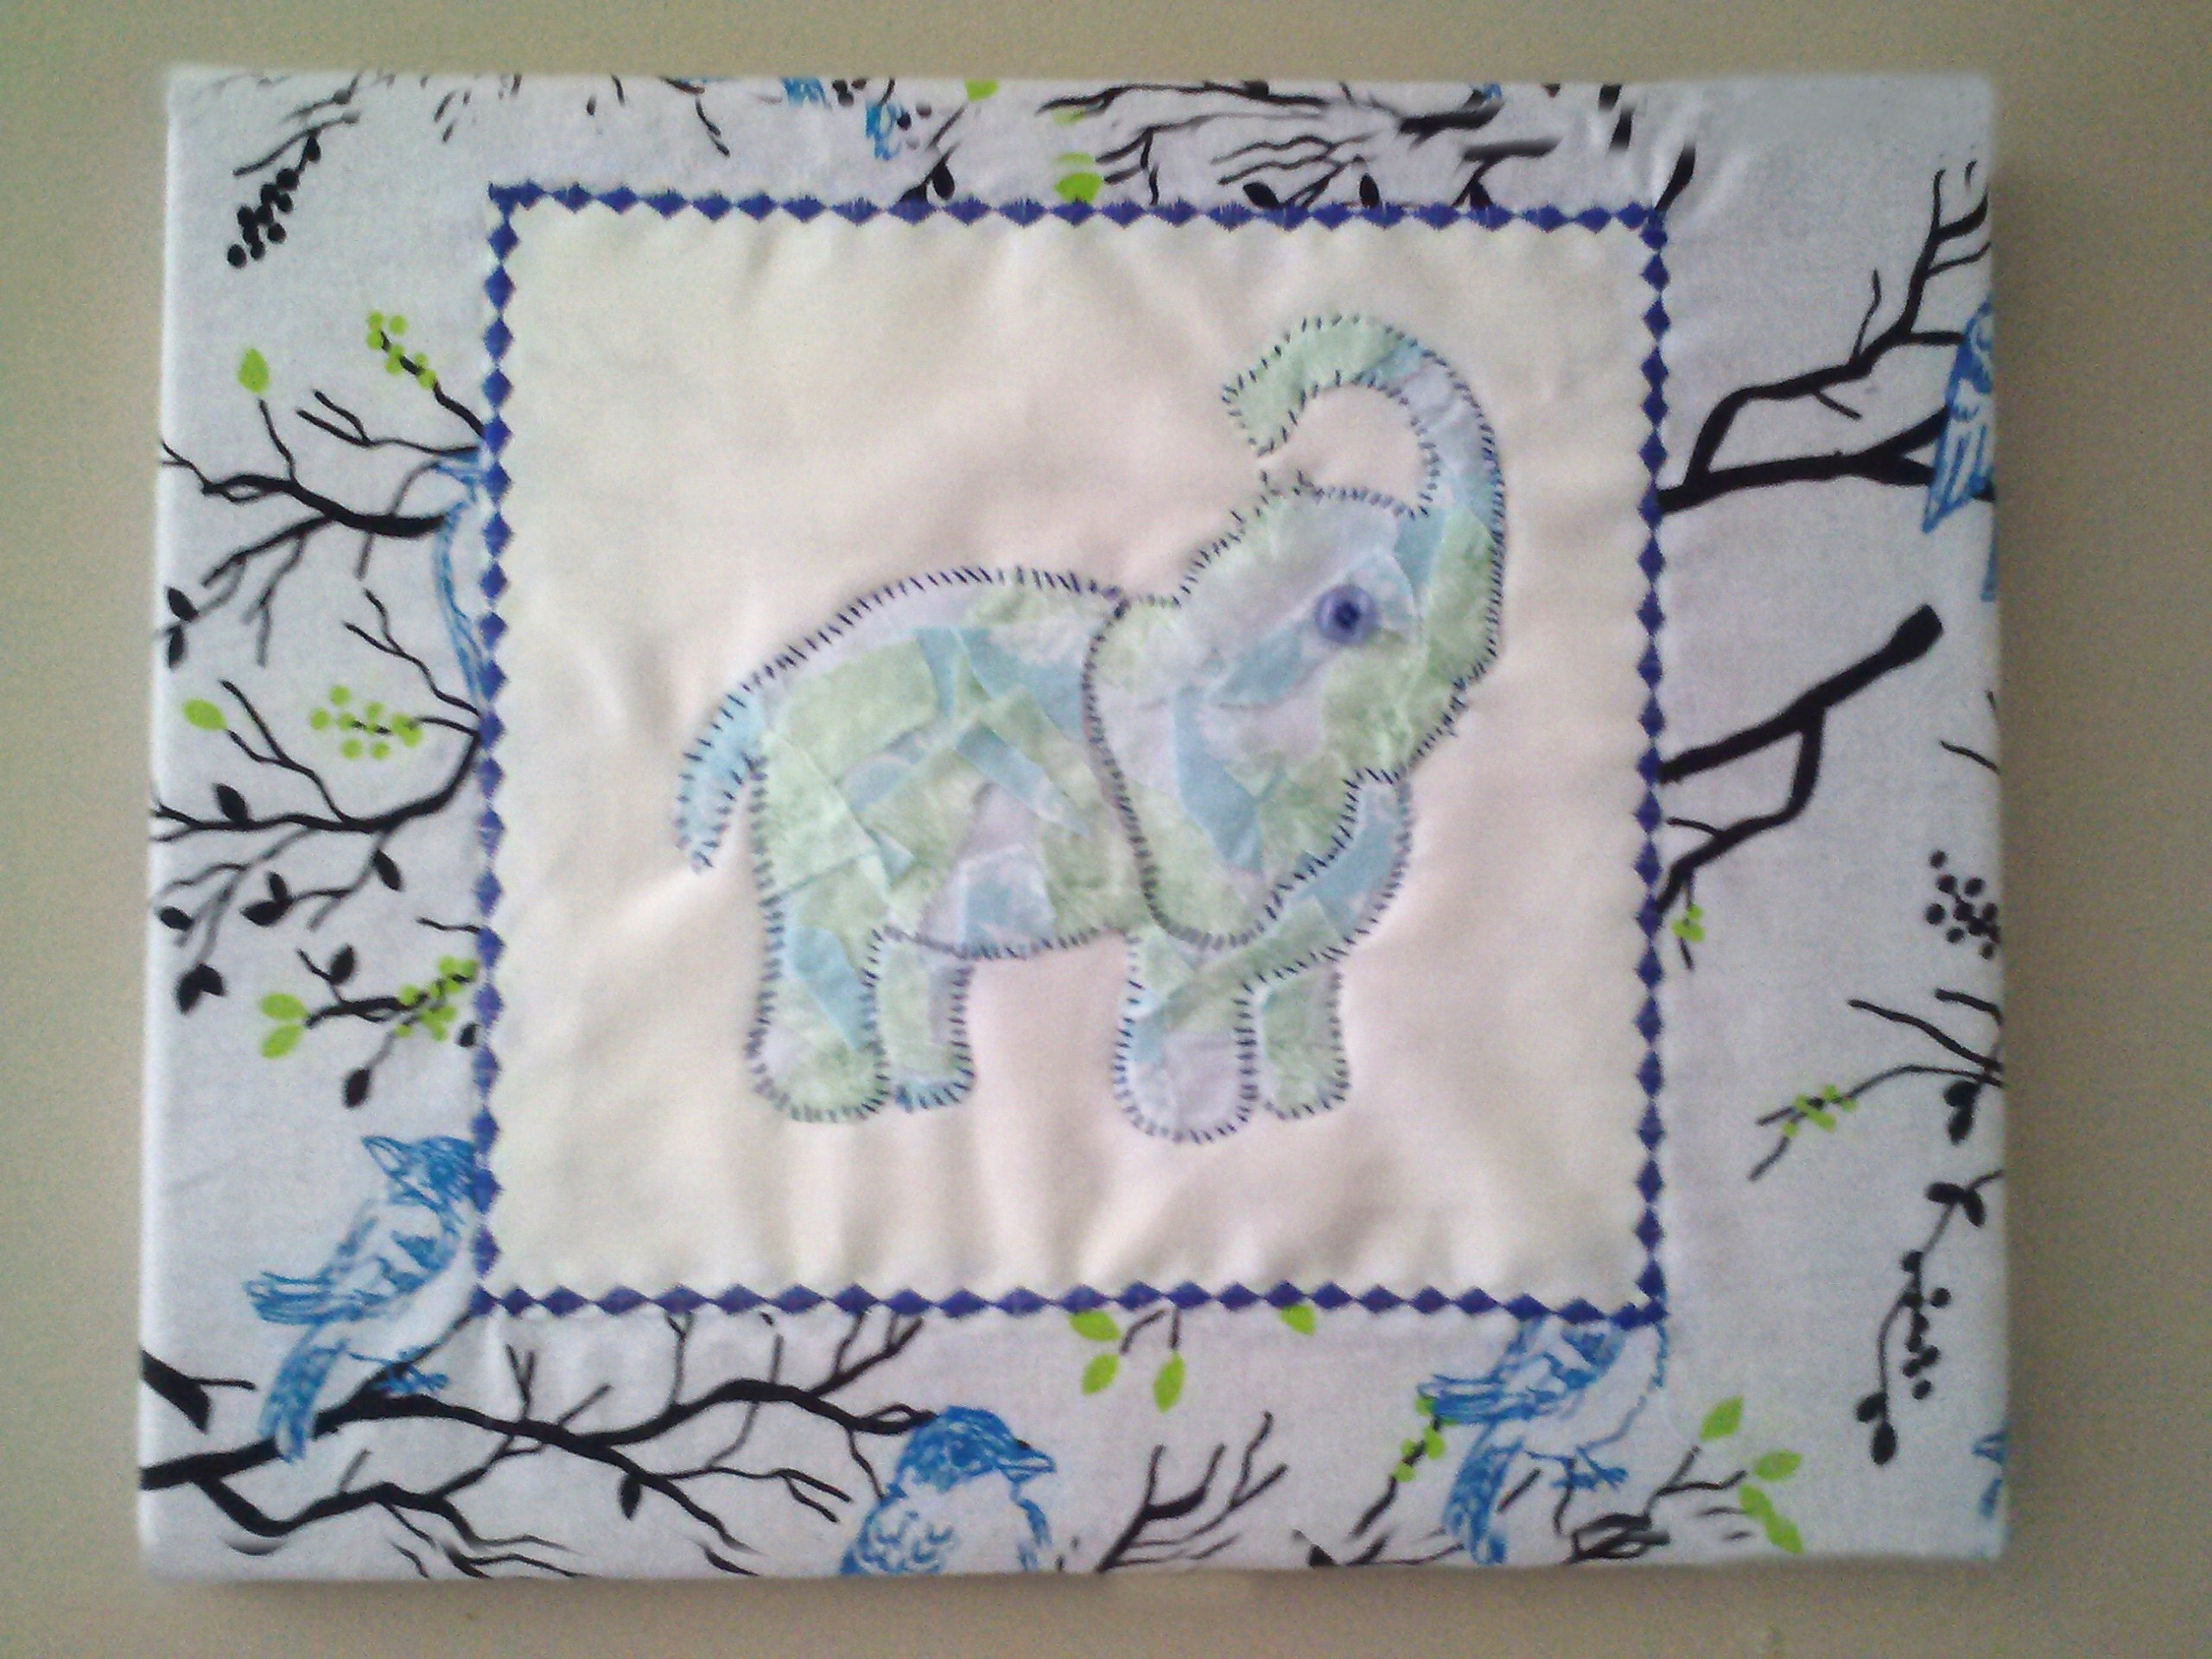 Diy Wall Art For Nursery: Fabric Covered Canvas | Christian Mom Values For Most Recent Fabric Wall Art For Nursery (Gallery 4 of 15)